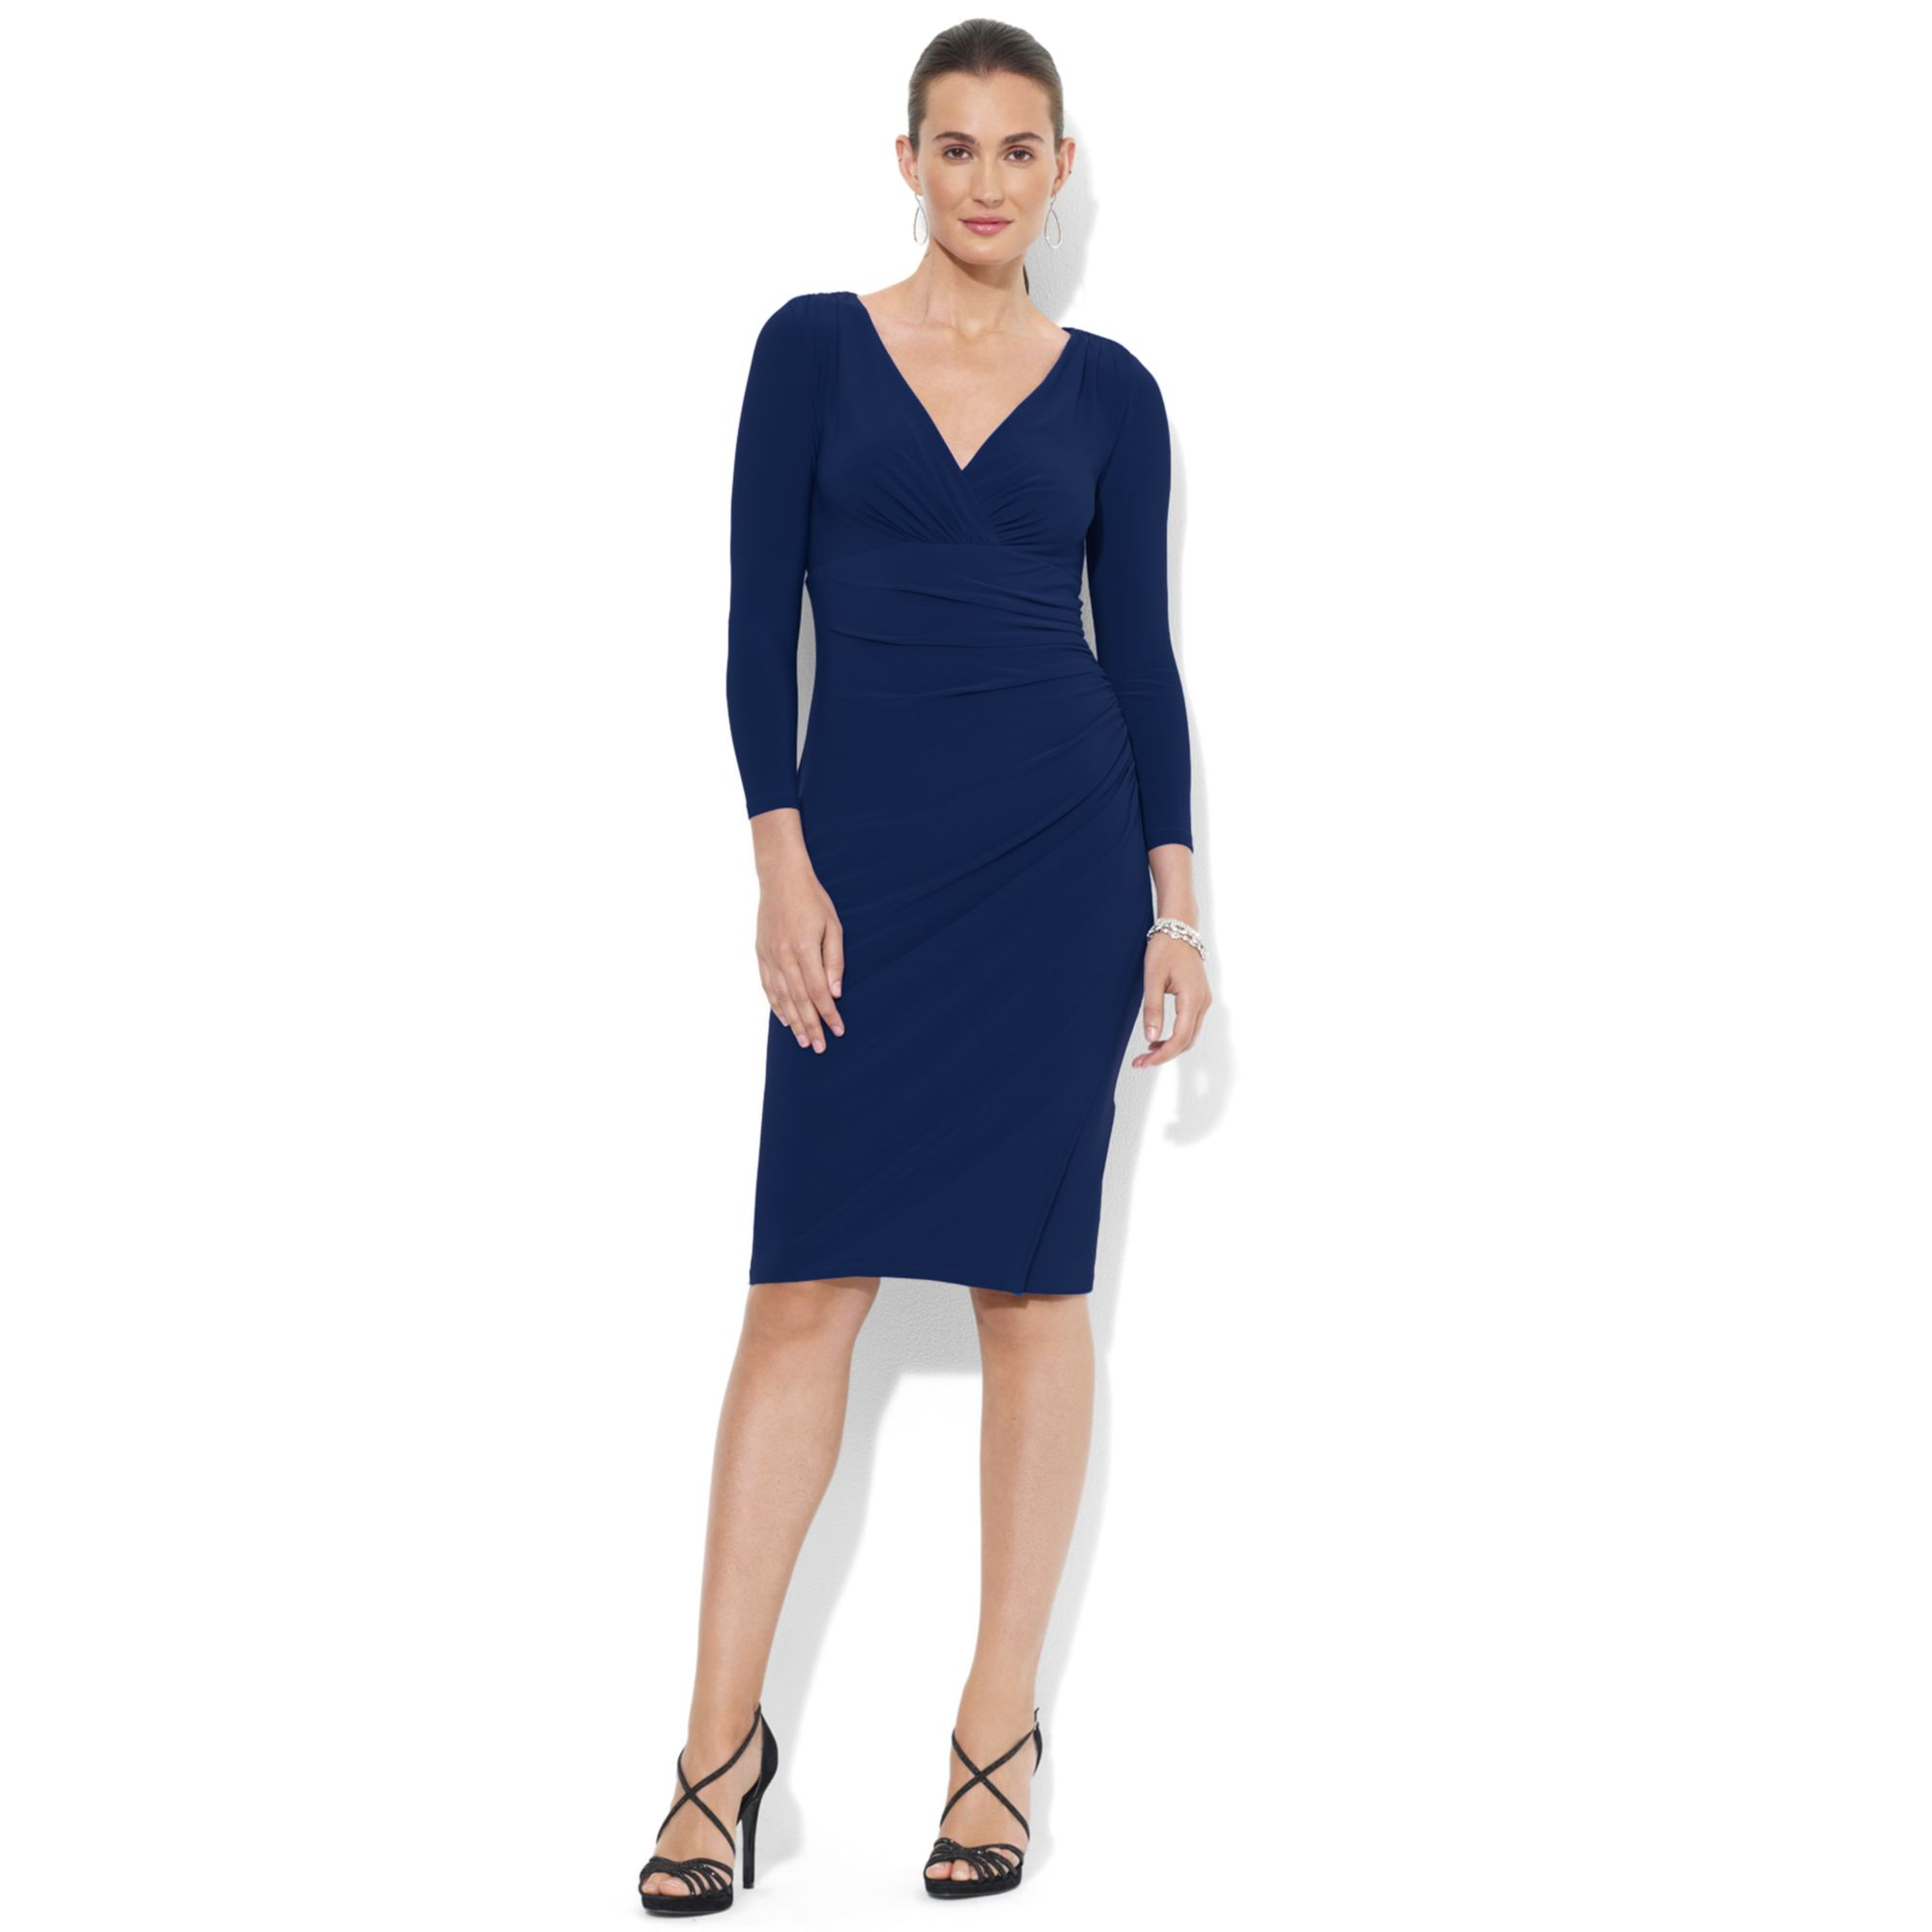 lauren by ralph lauren petite longsleeve ruched jersey dress in blue navy lyst. Black Bedroom Furniture Sets. Home Design Ideas